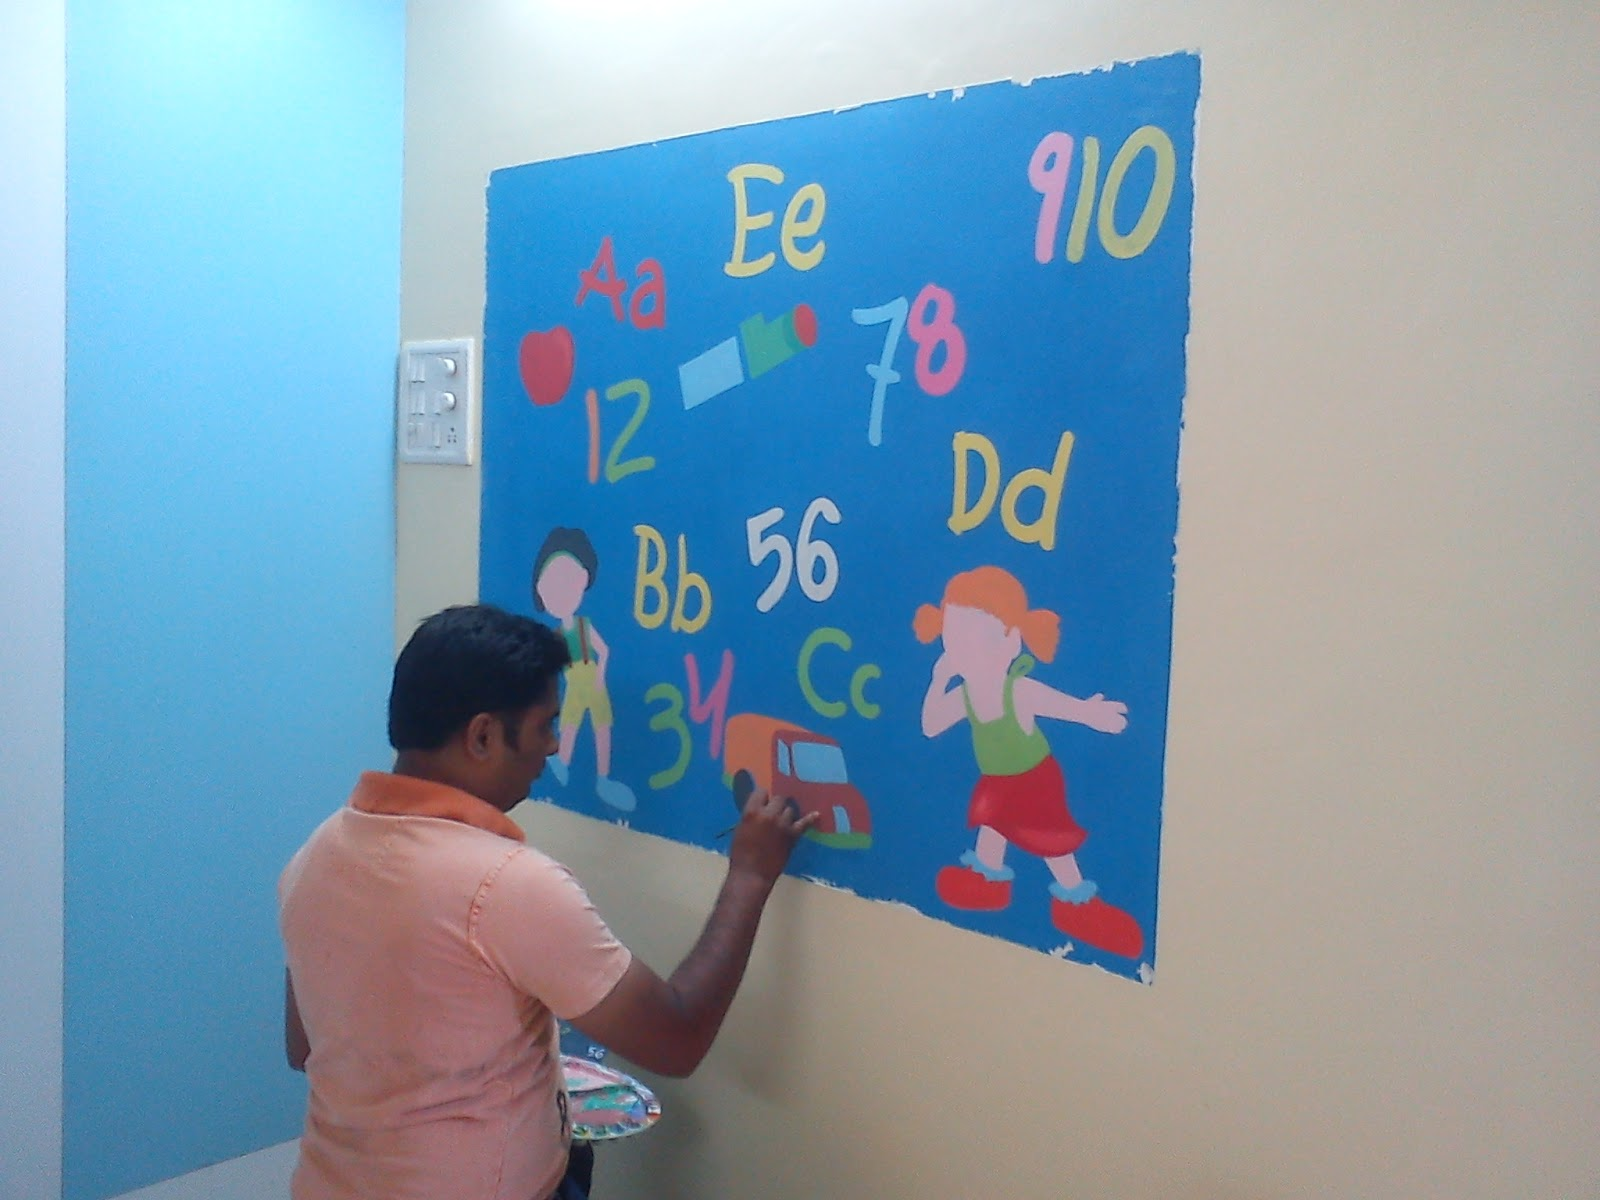 School kids classroom wall murals thana for Classroom wall mural ideas